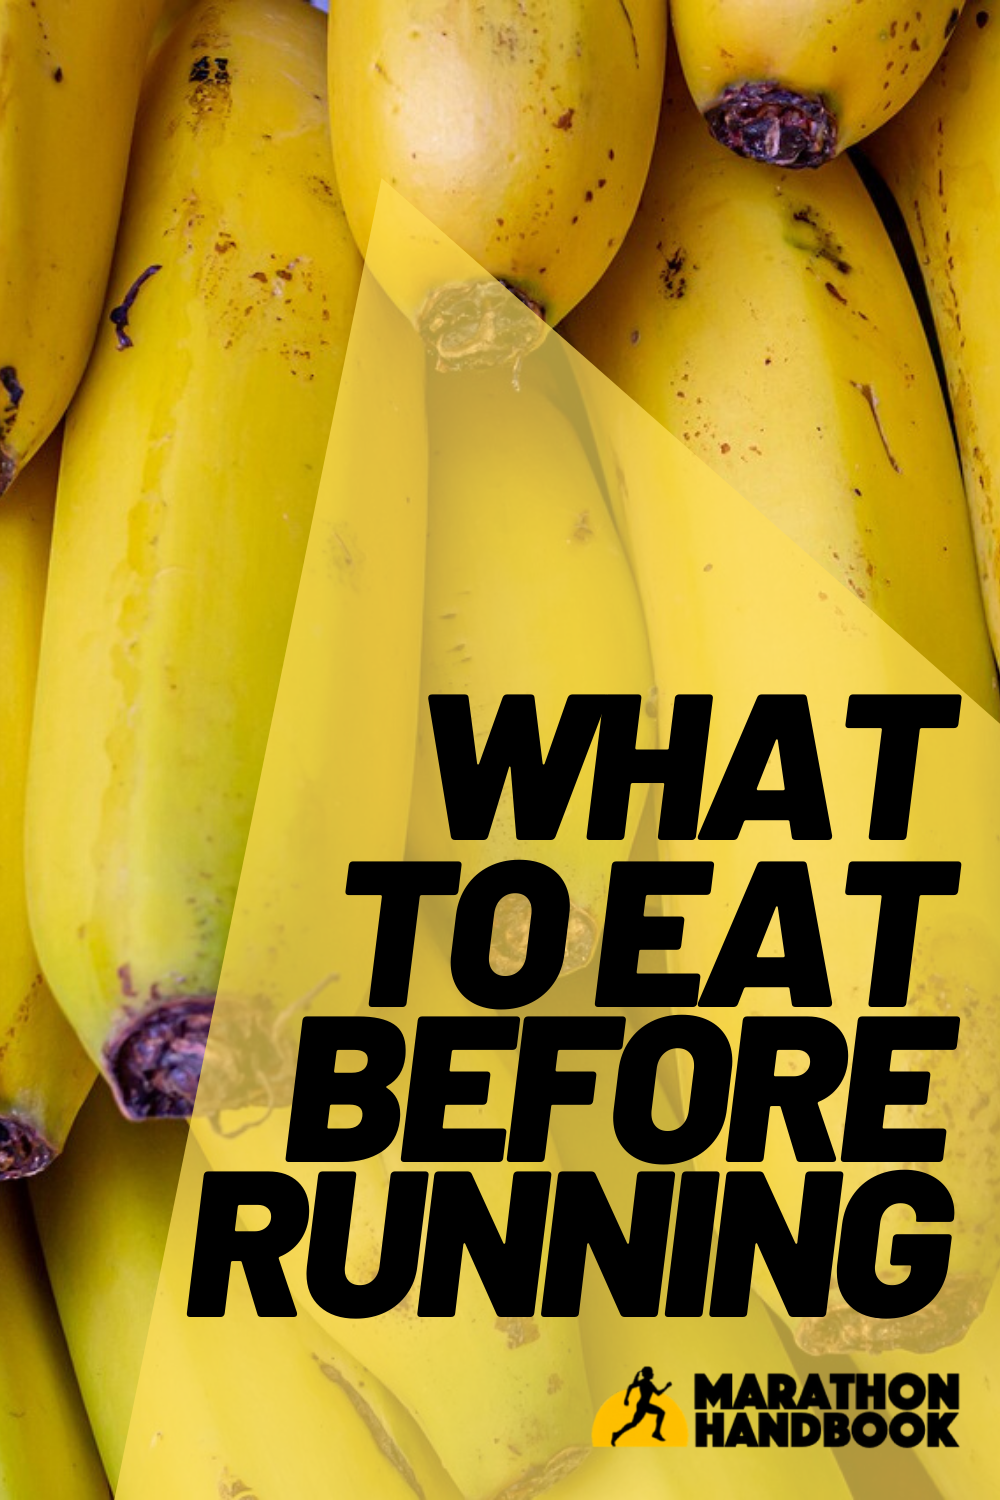 Here's What To Eat Before Running (And What Not To Eat